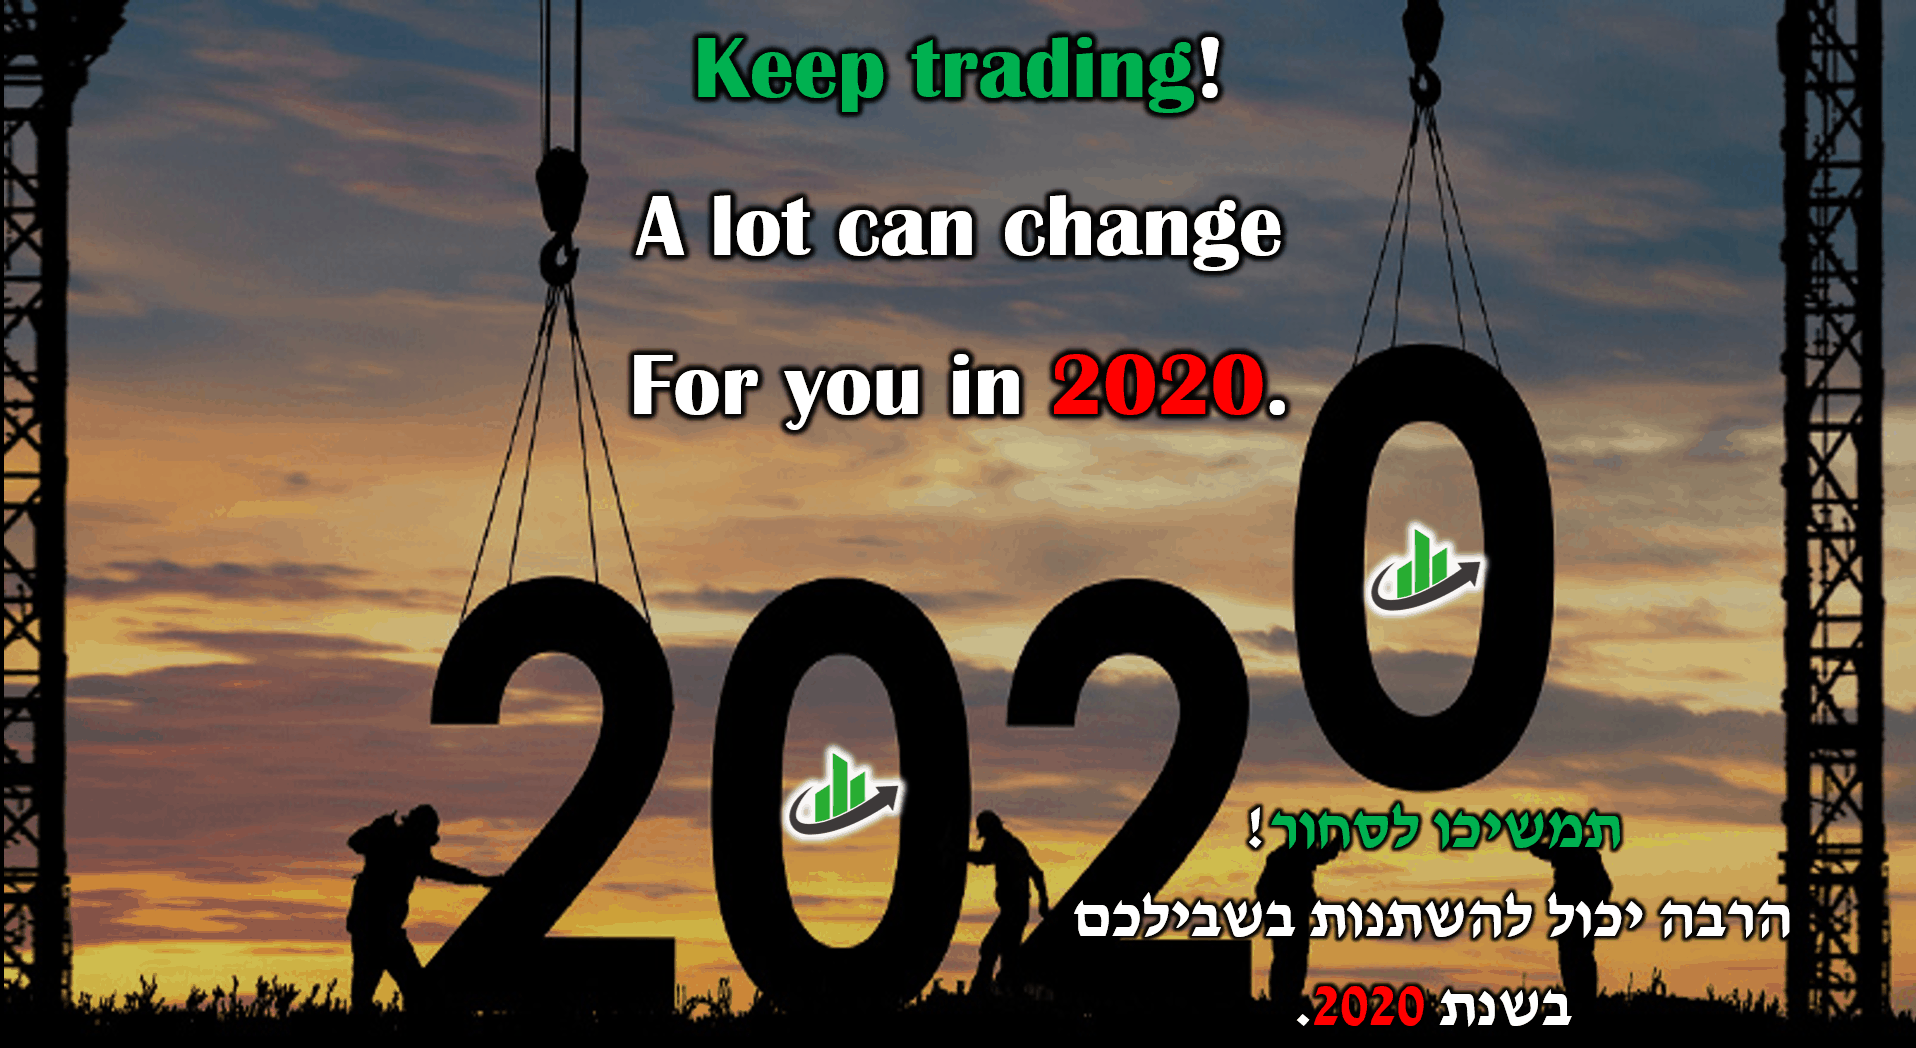 Keep trading! A lot can change For you in 2020.